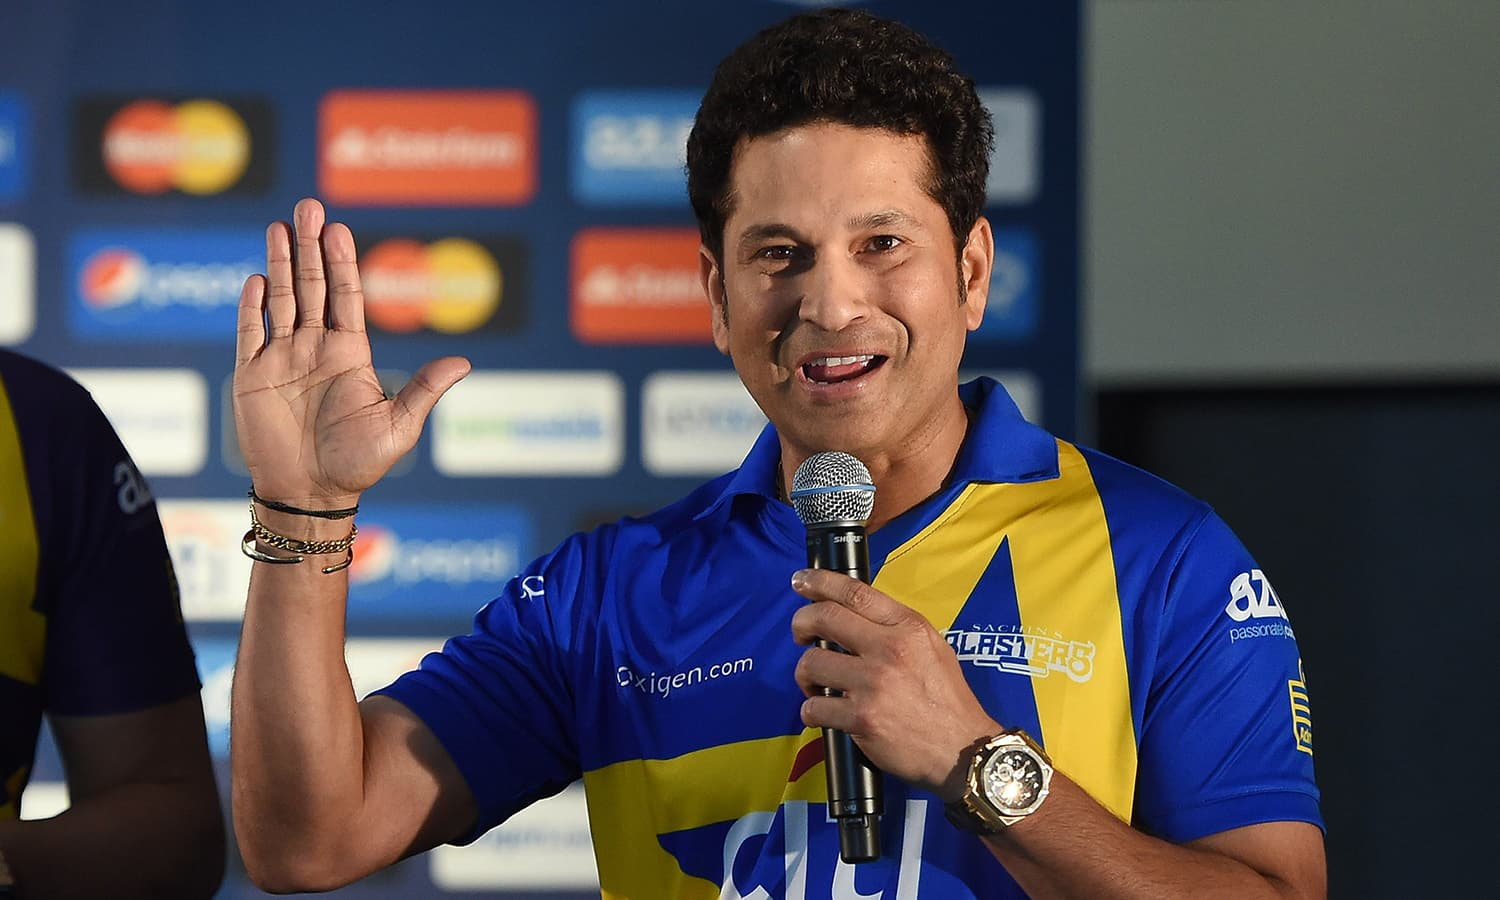 """Retired Indian cricketer Sachin Tendulkar speaks during a press conference in New York on November 5, 2015. Tendulkar and Australia's Shane Warne will lead a lineup of renowned cricket players from around the world in the inaugural """"Cricket All-Stars,"""" a three-game series to be played in Major League Baseball stadiums in New York , Houston and Los Angeles, to promote cricket the US. AFP PHOTO/JEWEL SAMAD"""